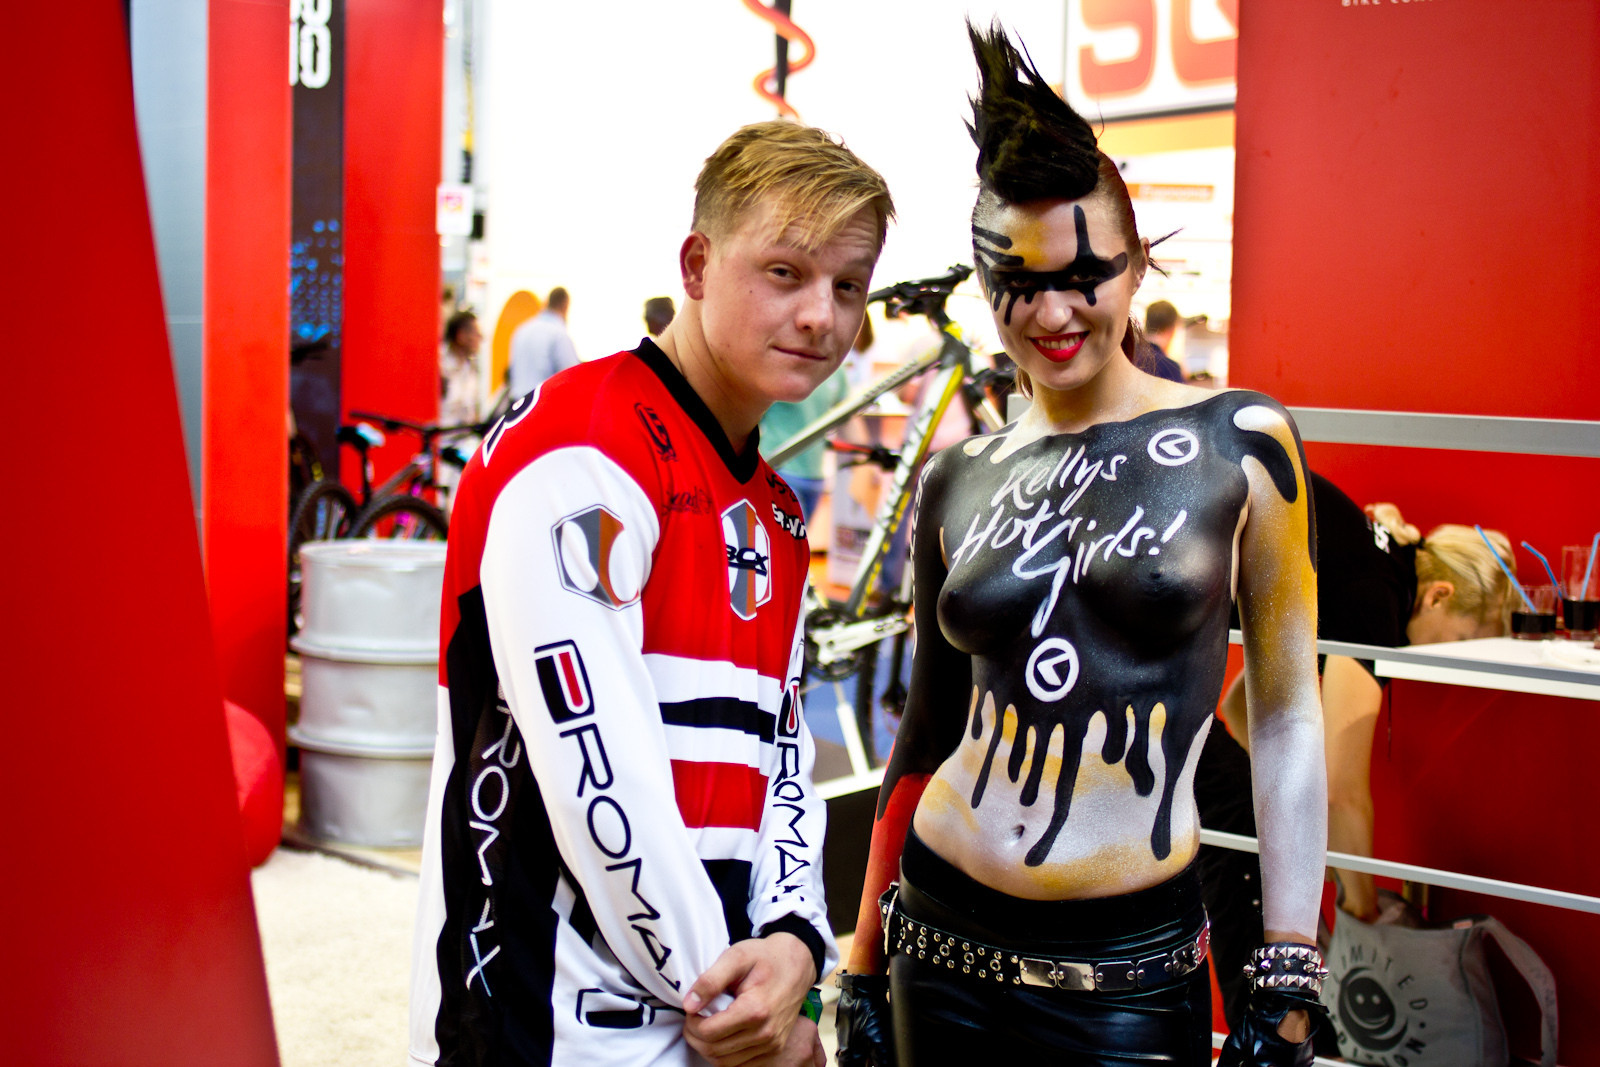 Visser's Blue Steel Meets Kelly's Hot Girls - Randoms at Eurobike 2013 - Mountain Biking Pictures - Vital MTB